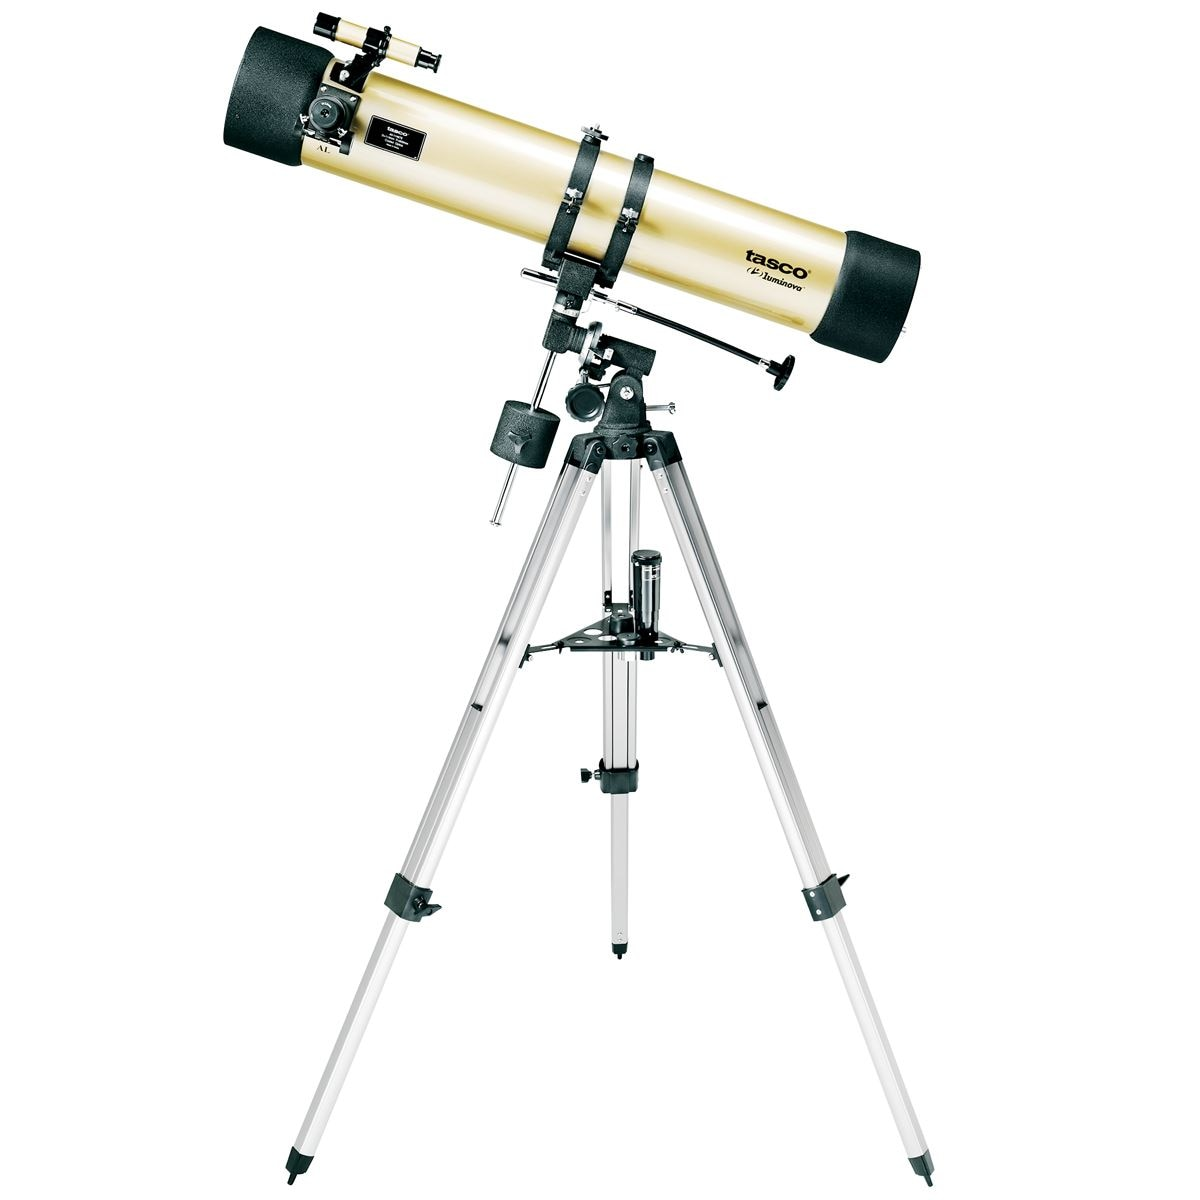 Telescopio tasco luminova 675x114m  - Sanborns